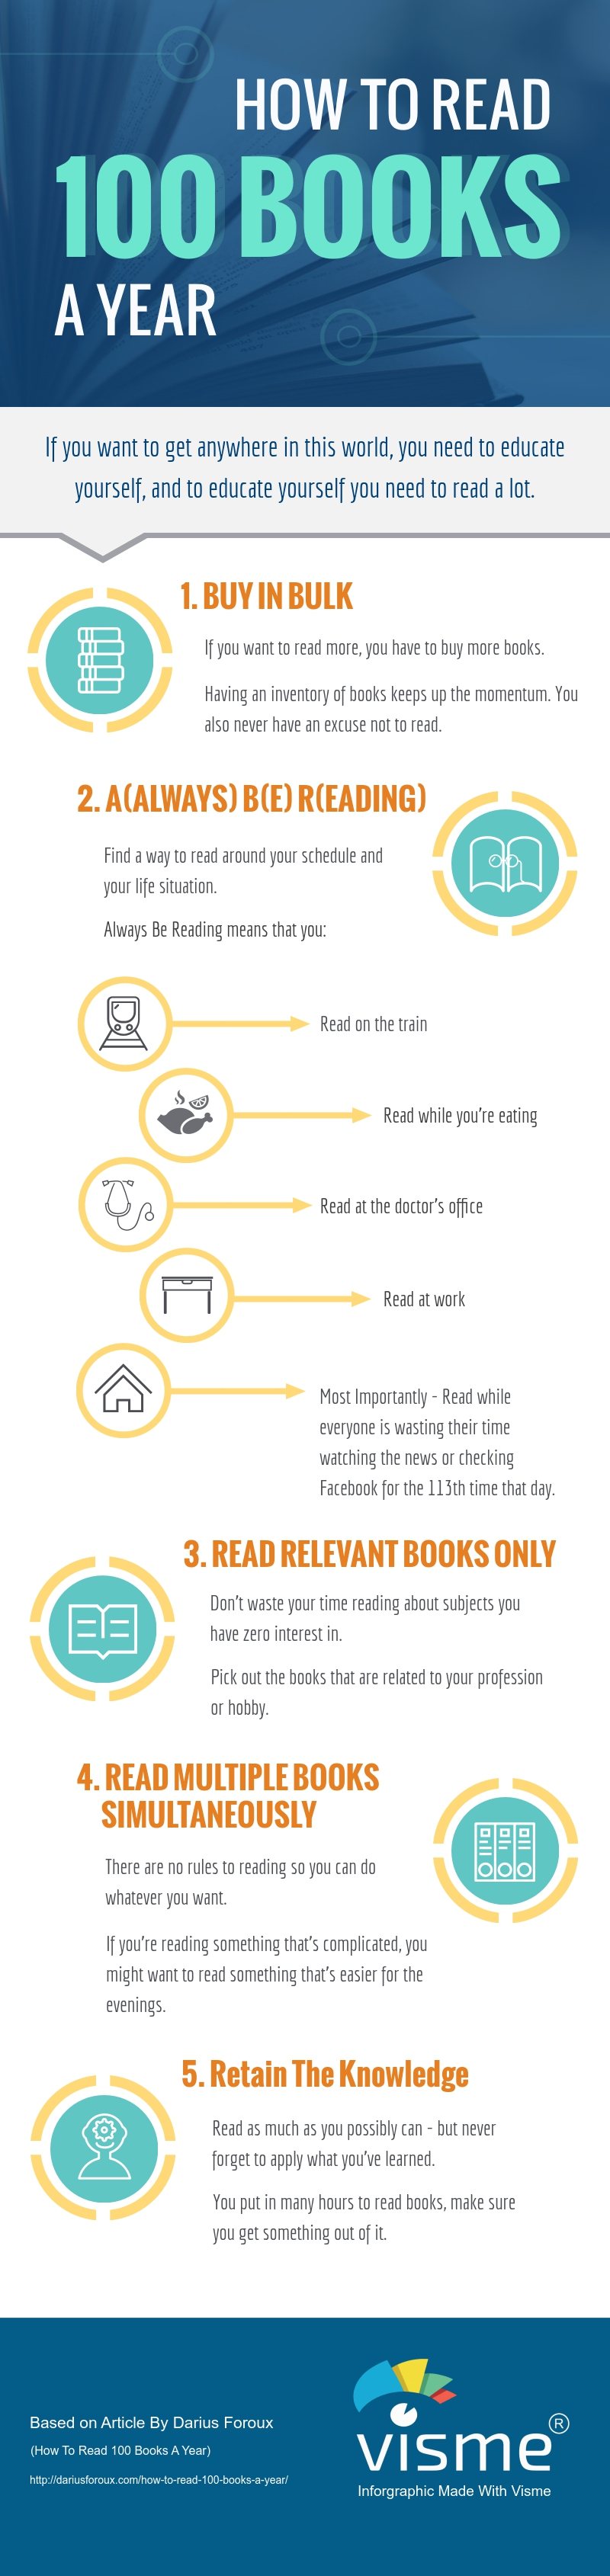 How To Read 100 Books A Year